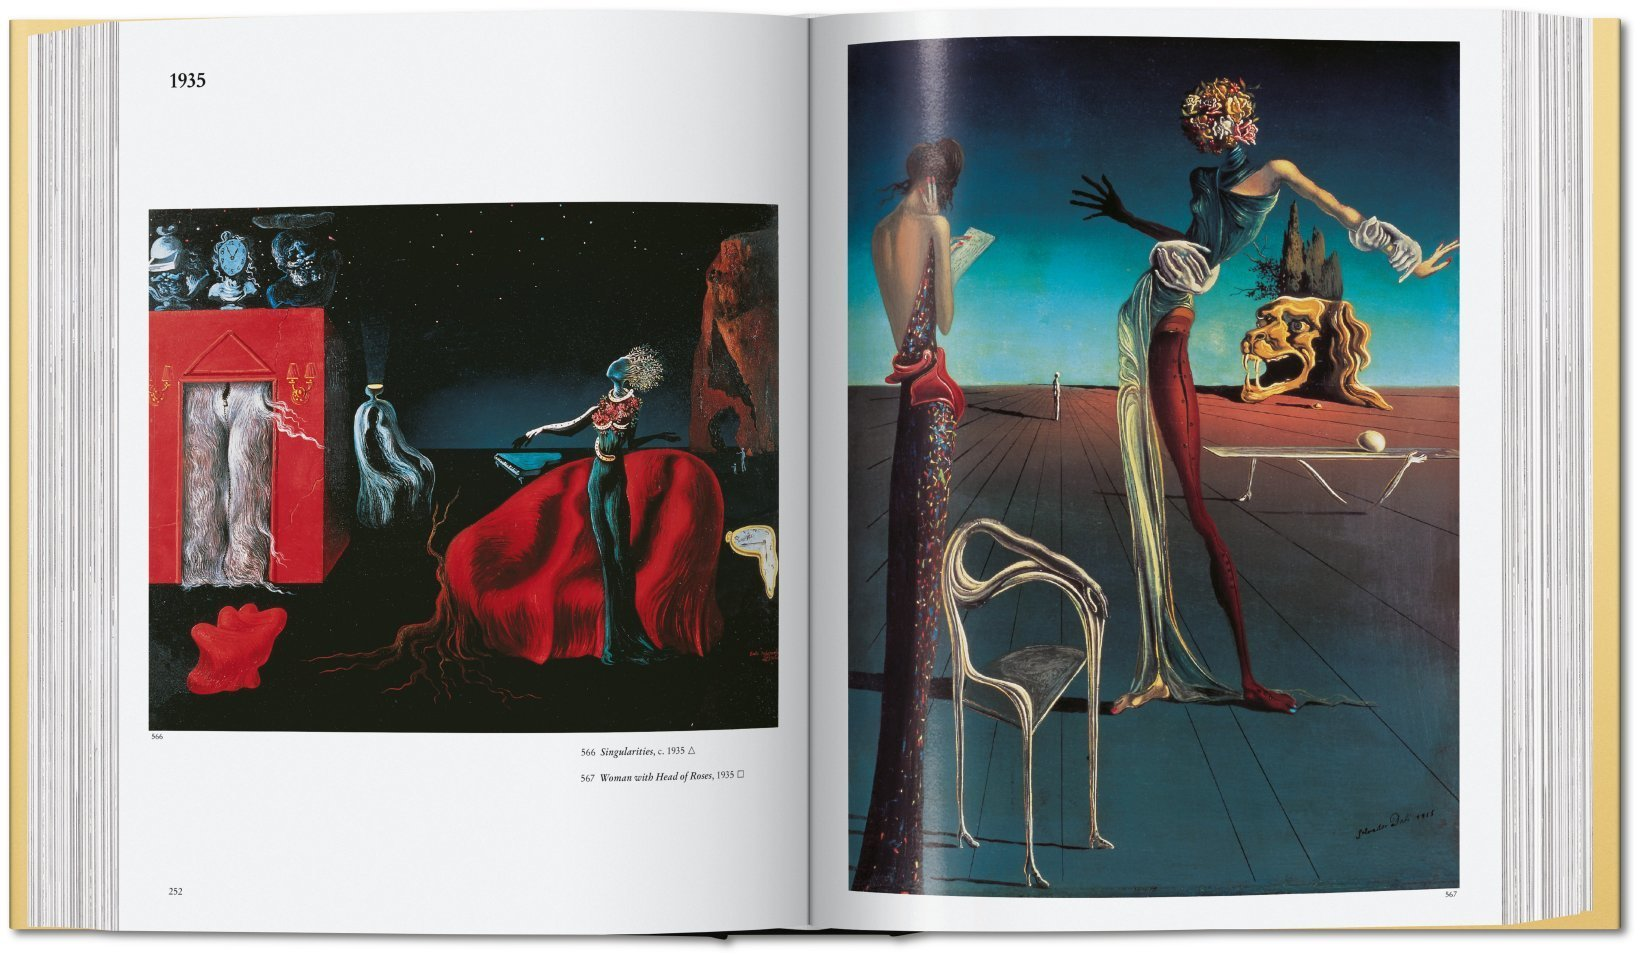 By Robert Descharnes, Gilles Neret from Dali. The Paintings copyright Taschen 2019